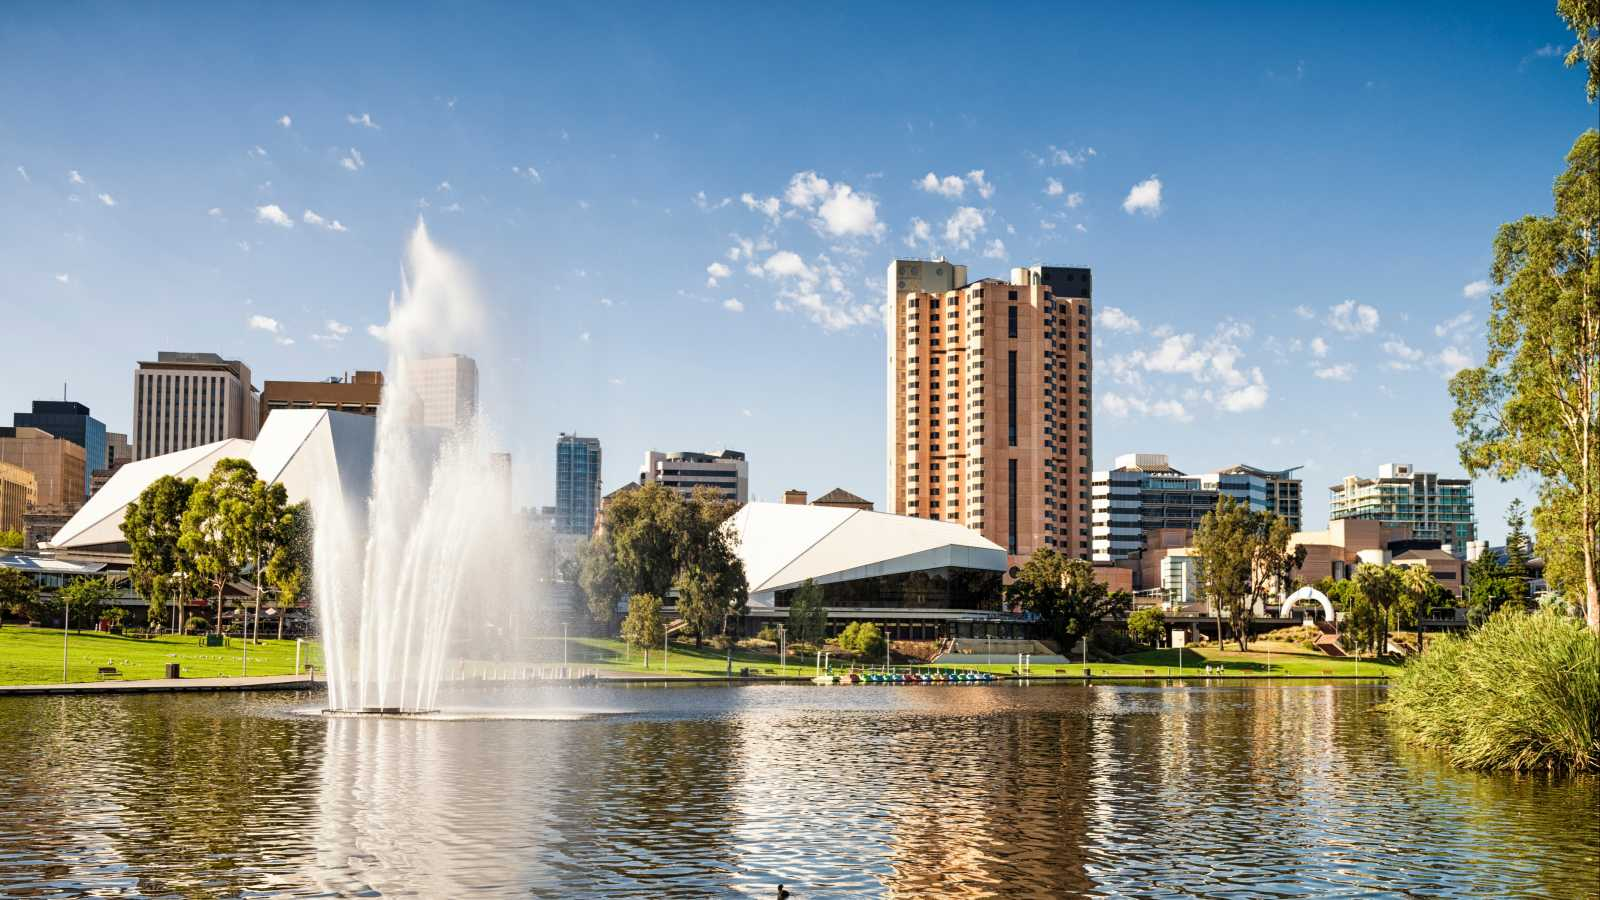 Oceania, Australia, a fountain with the Adelaide skyline in the background with blue skies.